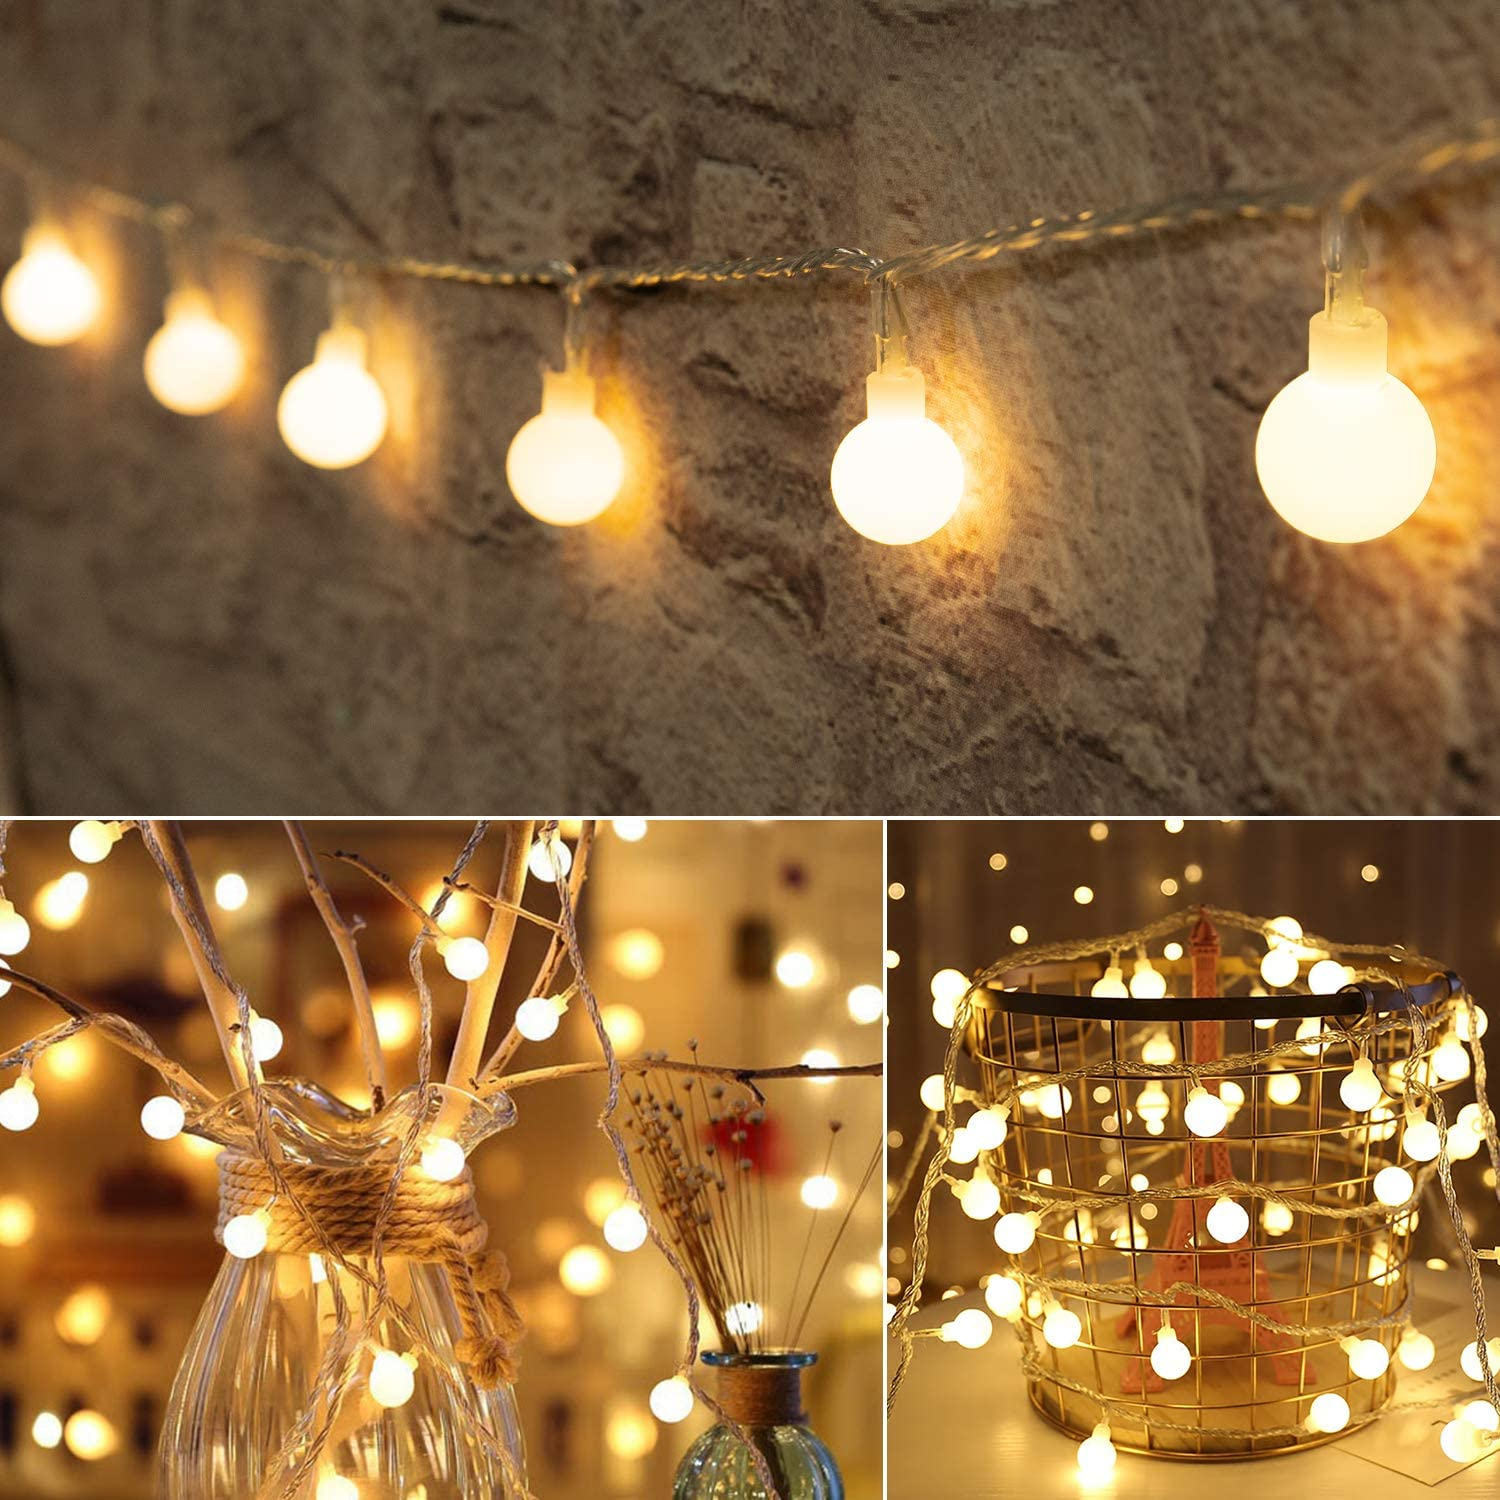 Amazon Com 33 Feet 100 Led Globe Ball String Lights Fairy String Lights Plug In 8 Modes With Remote Decor For Indoor Outdoor Party Wedding Christmas Tree Garden Warm White Home Kitchen